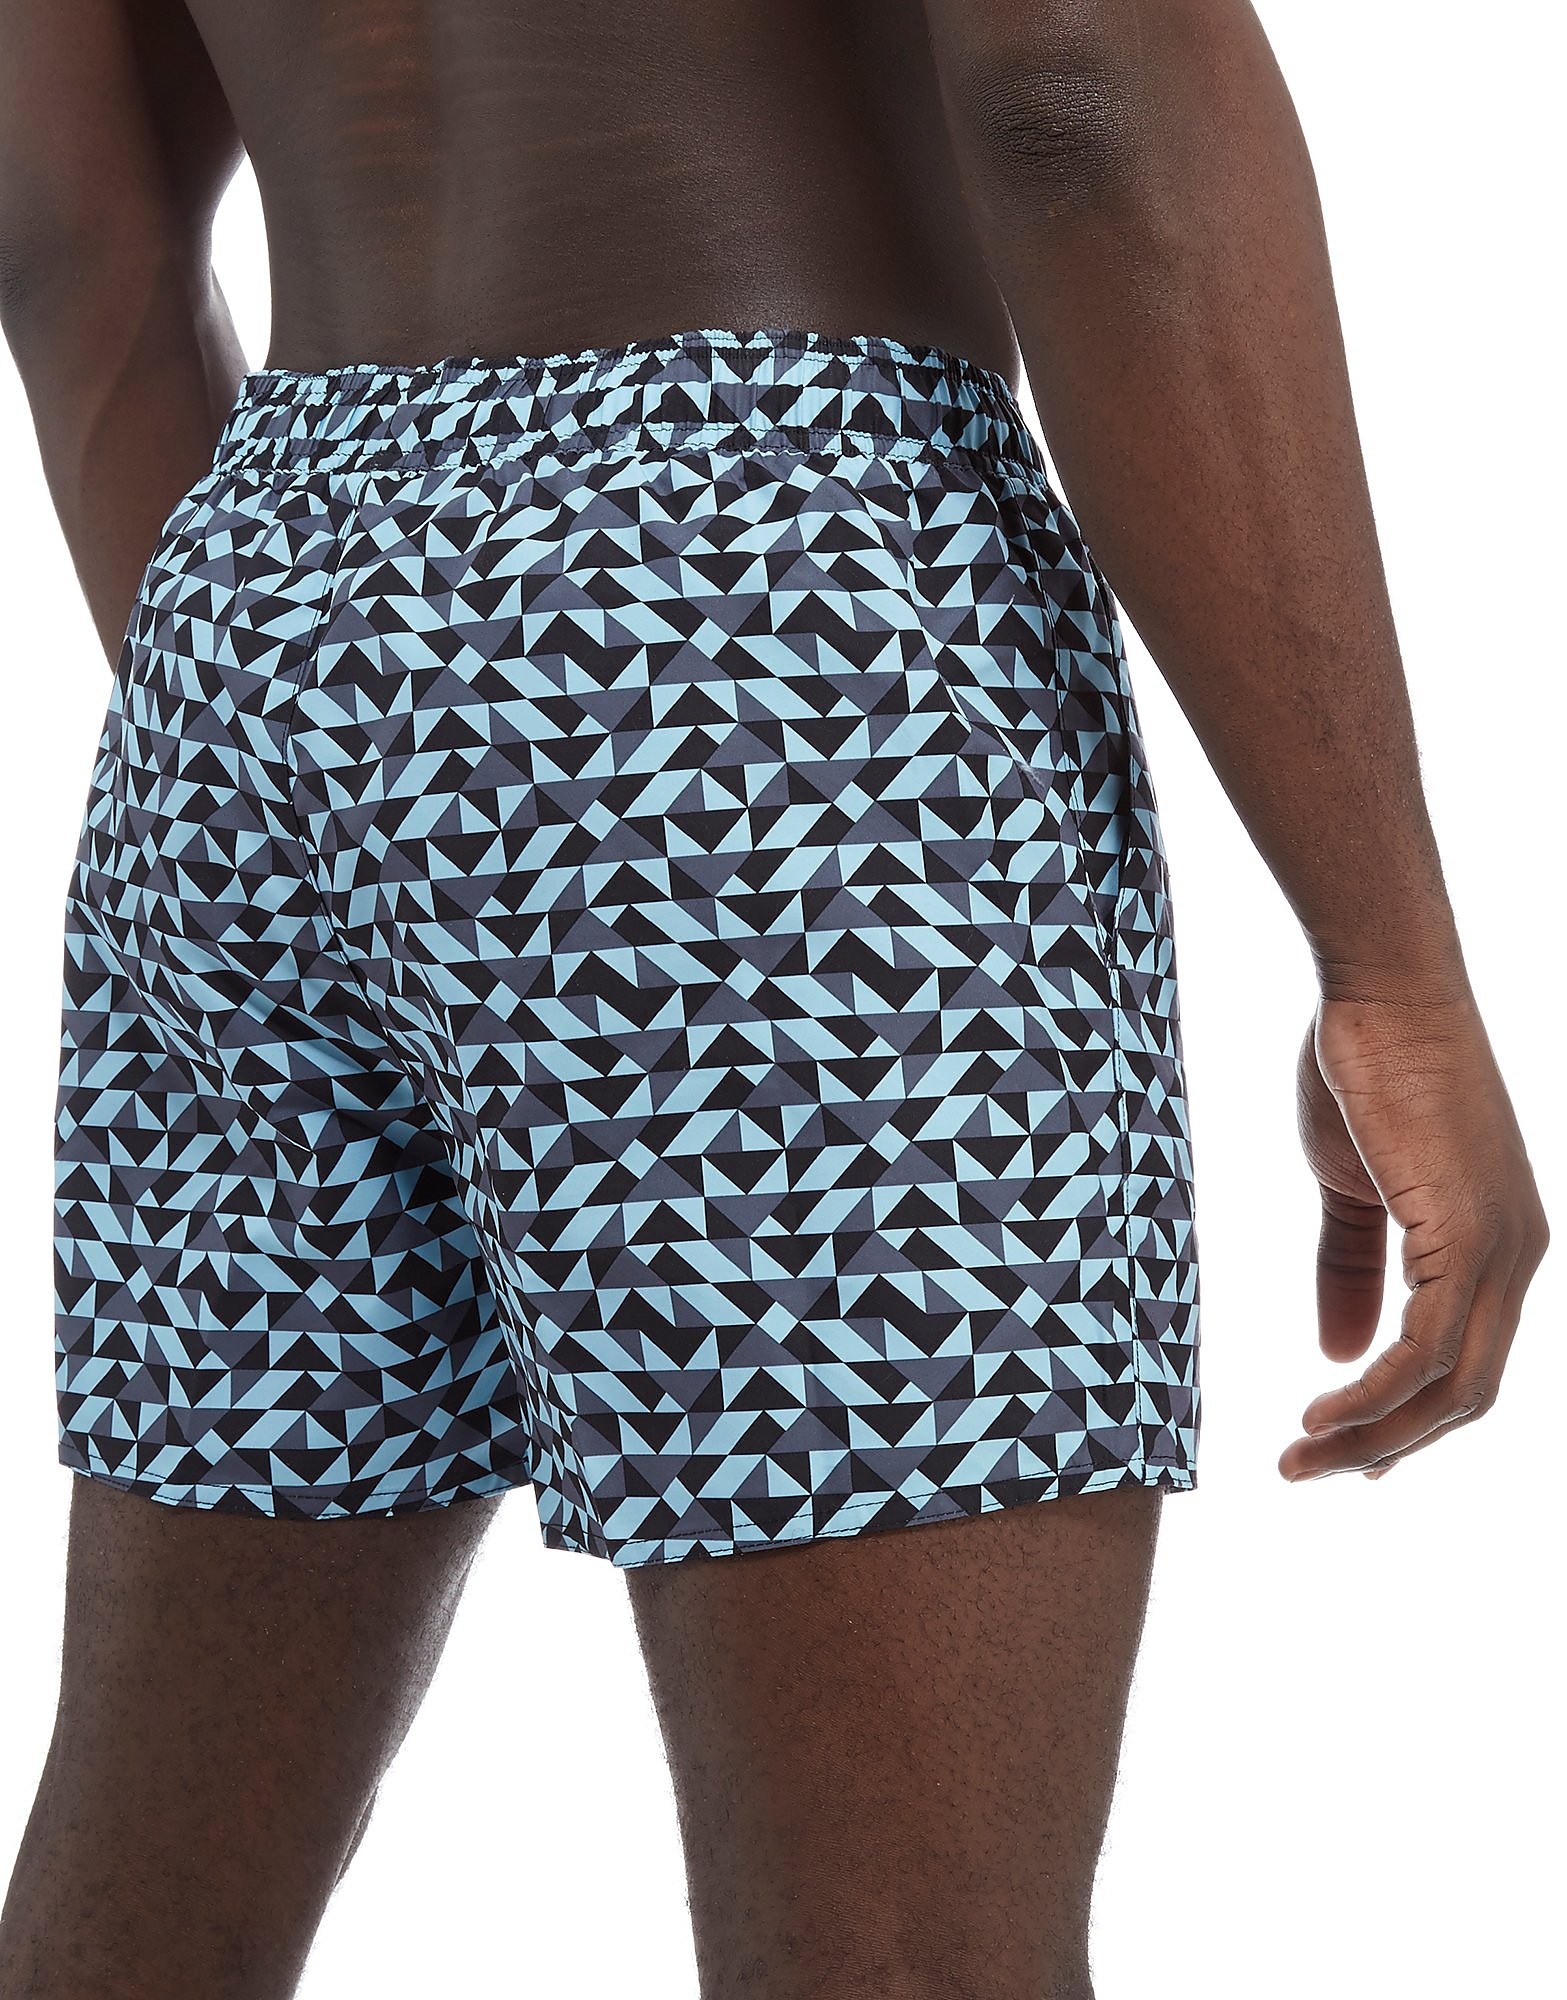 "Speedo Vintage Printed 14"" Swim Shorts"